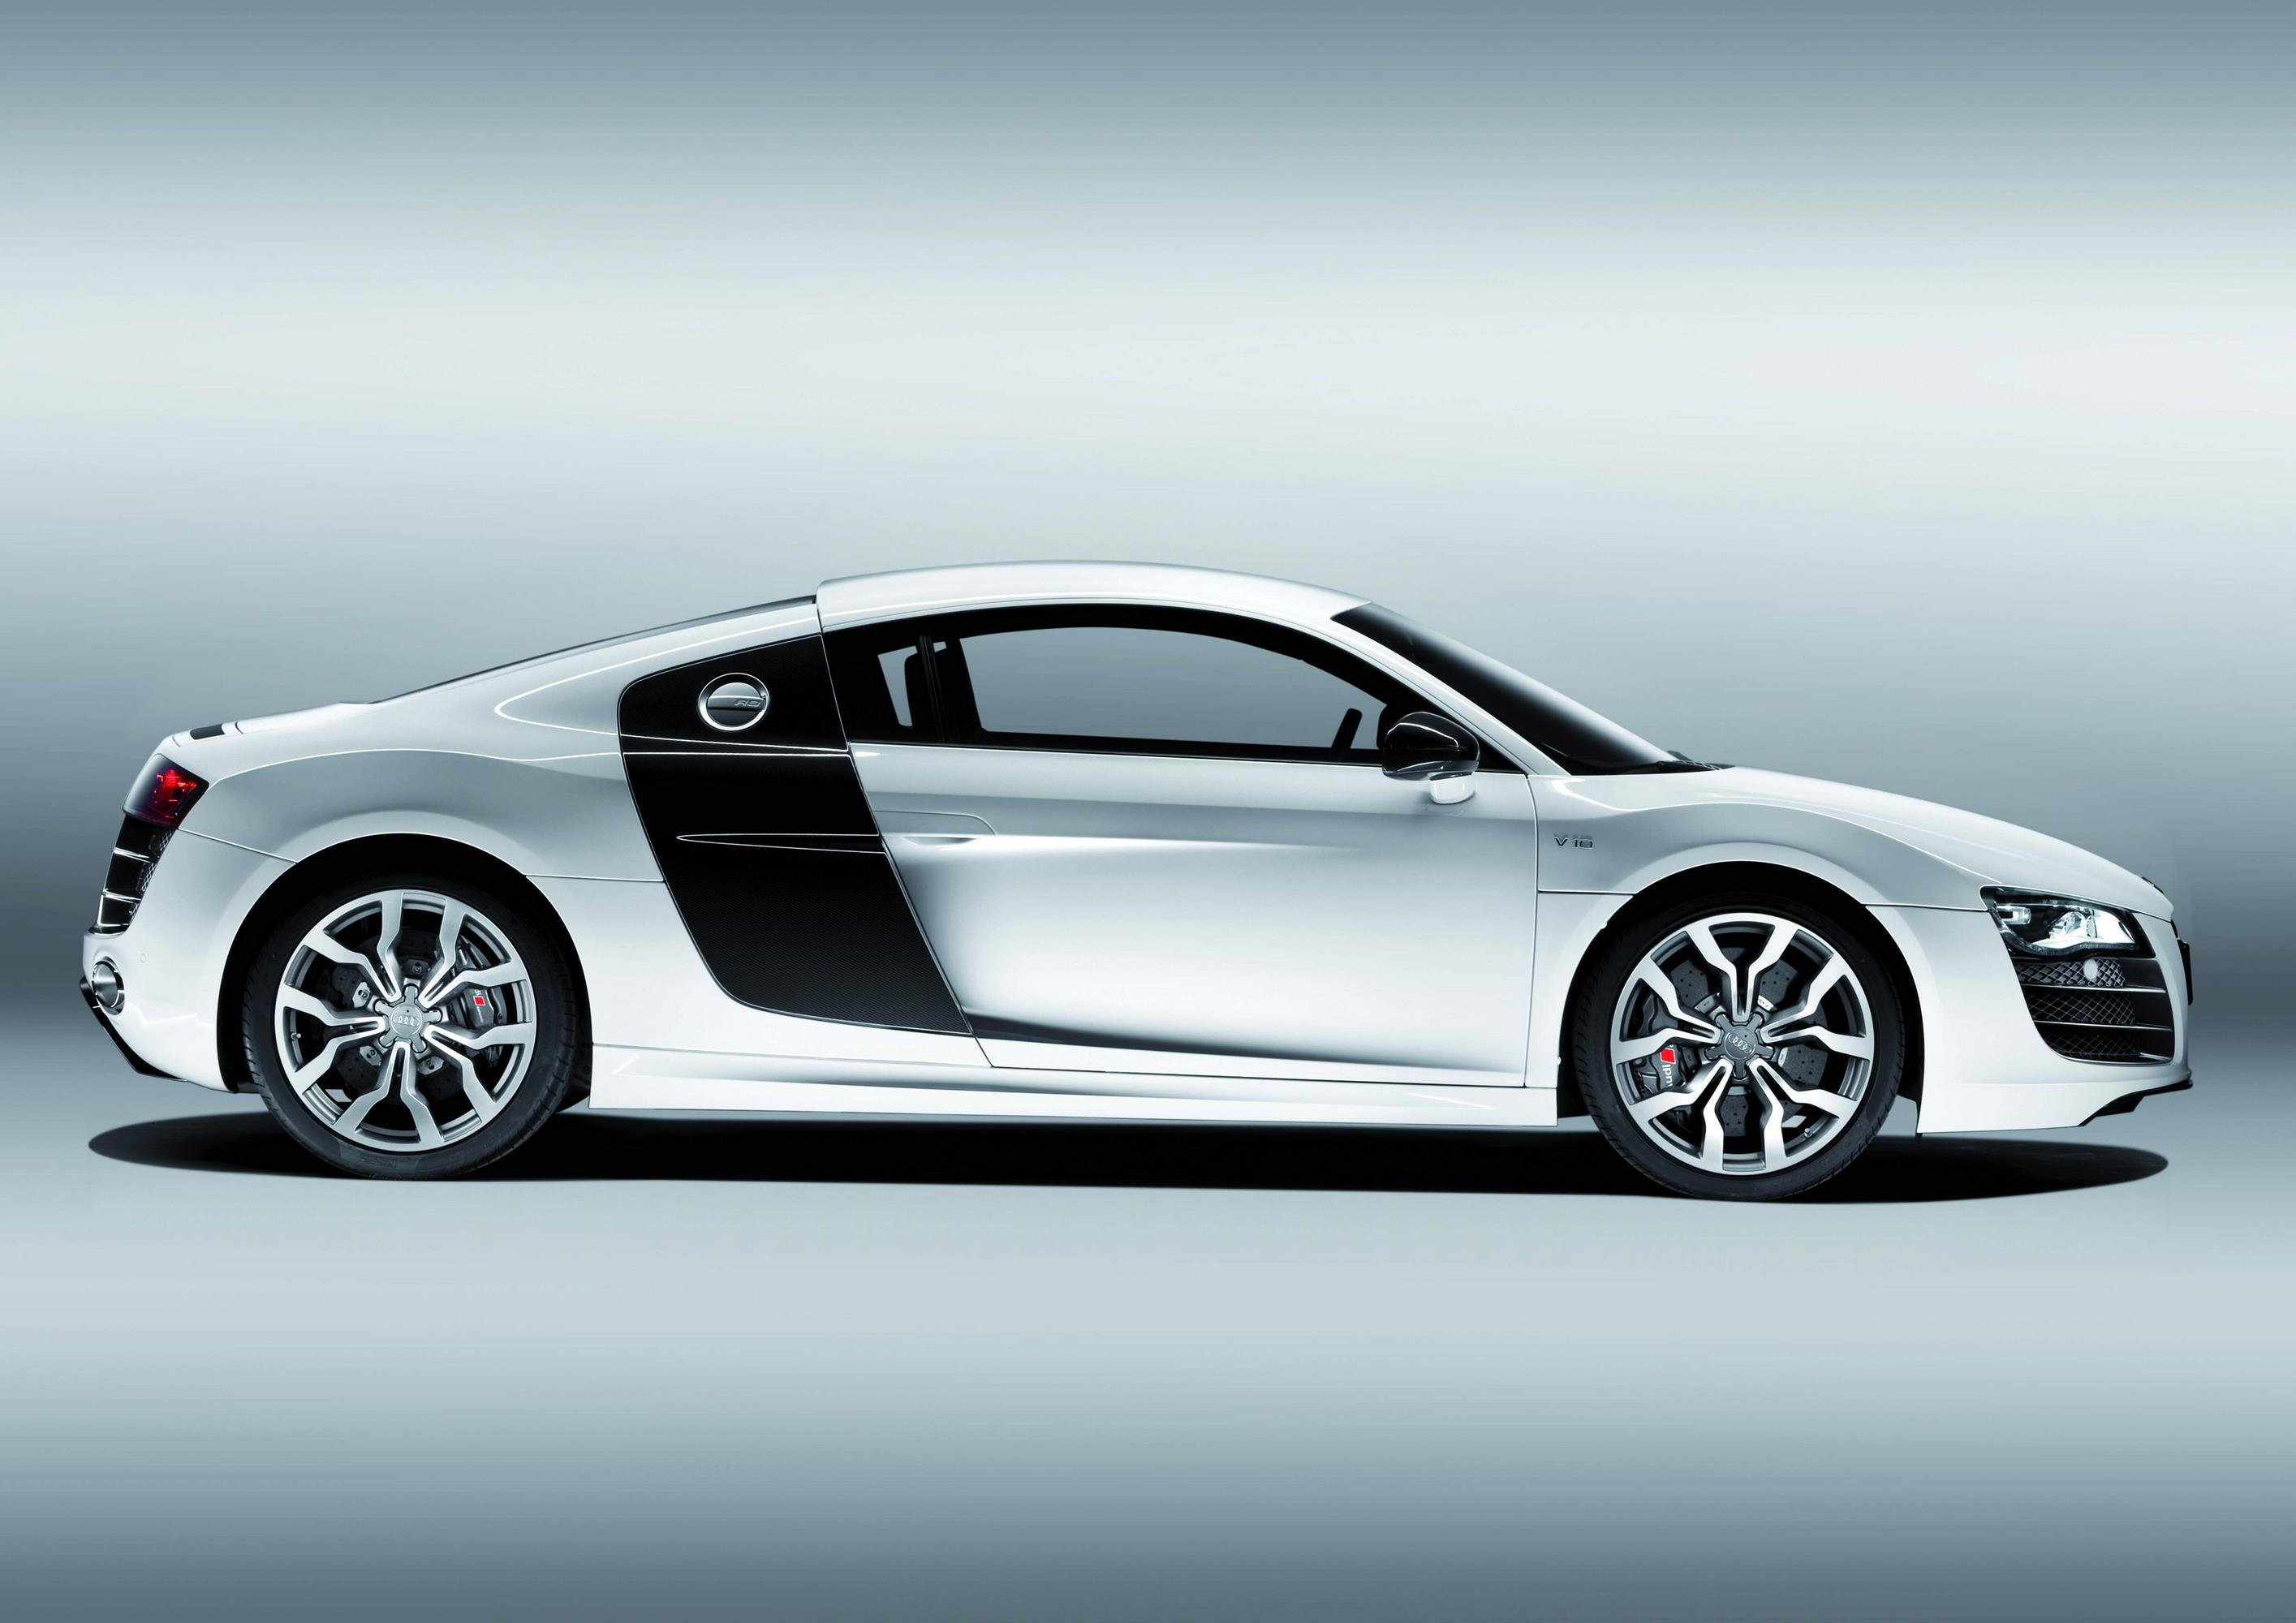 2010 audi r8 v10 5.2 fsi review - top speed